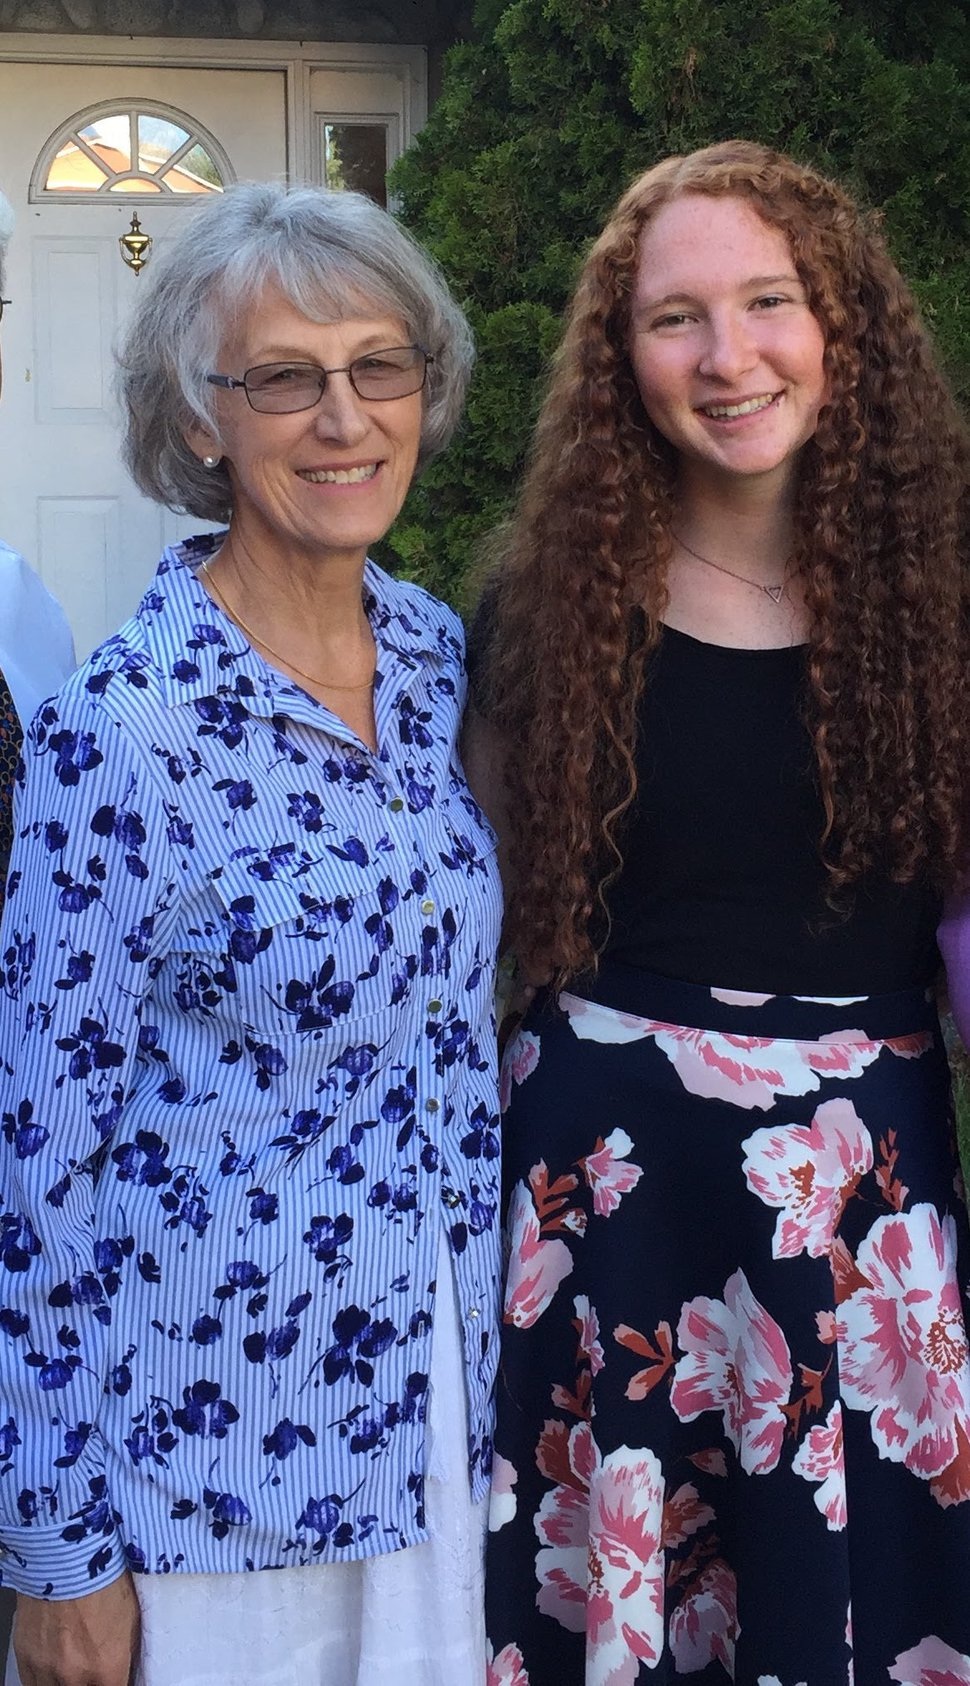 (Photo courtesy of Robbyn Scribner) Maggie Scribner, right, with her grandmother, Cecile Scribner, who also served a mission with The Church of Jesus Christ of Latter-day Saints in the 1960s in Australia.